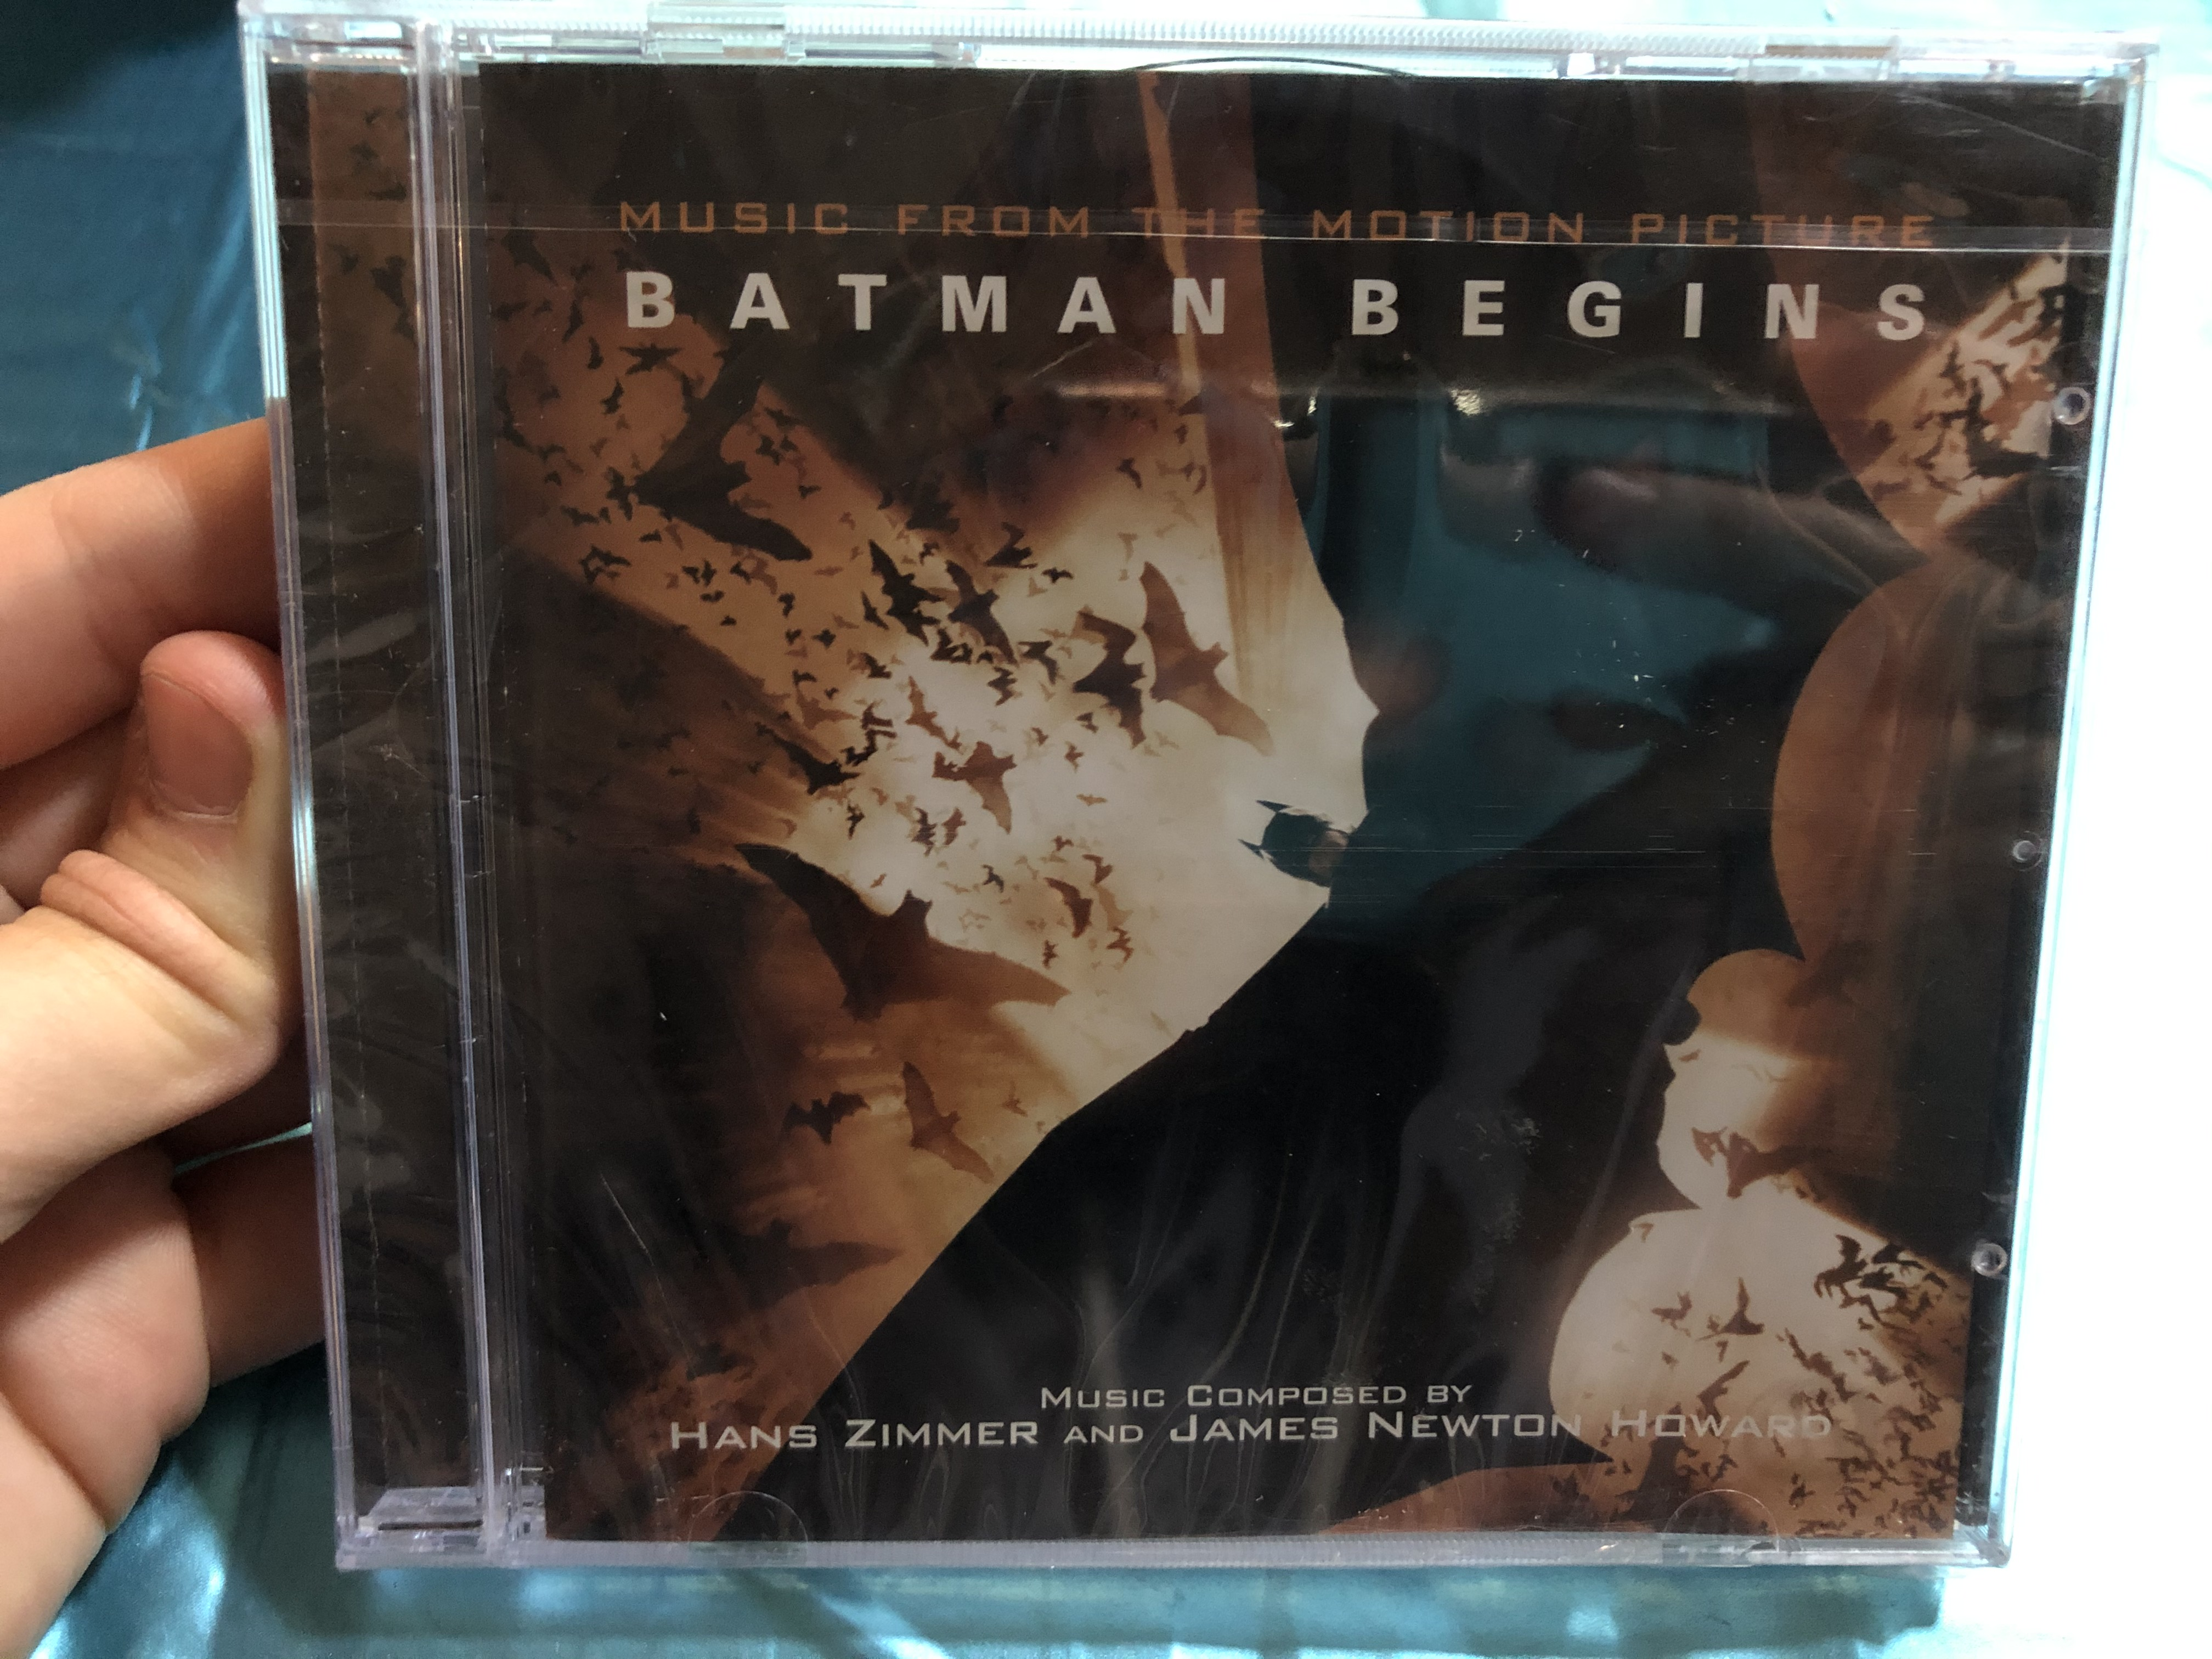 batman-begins-music-from-the-motion-picture-music-composed-by-hans-zimmer-and-james-newton-howard-warner-sunset-records-audio-cd-2005-zgen71324-1-.jpg